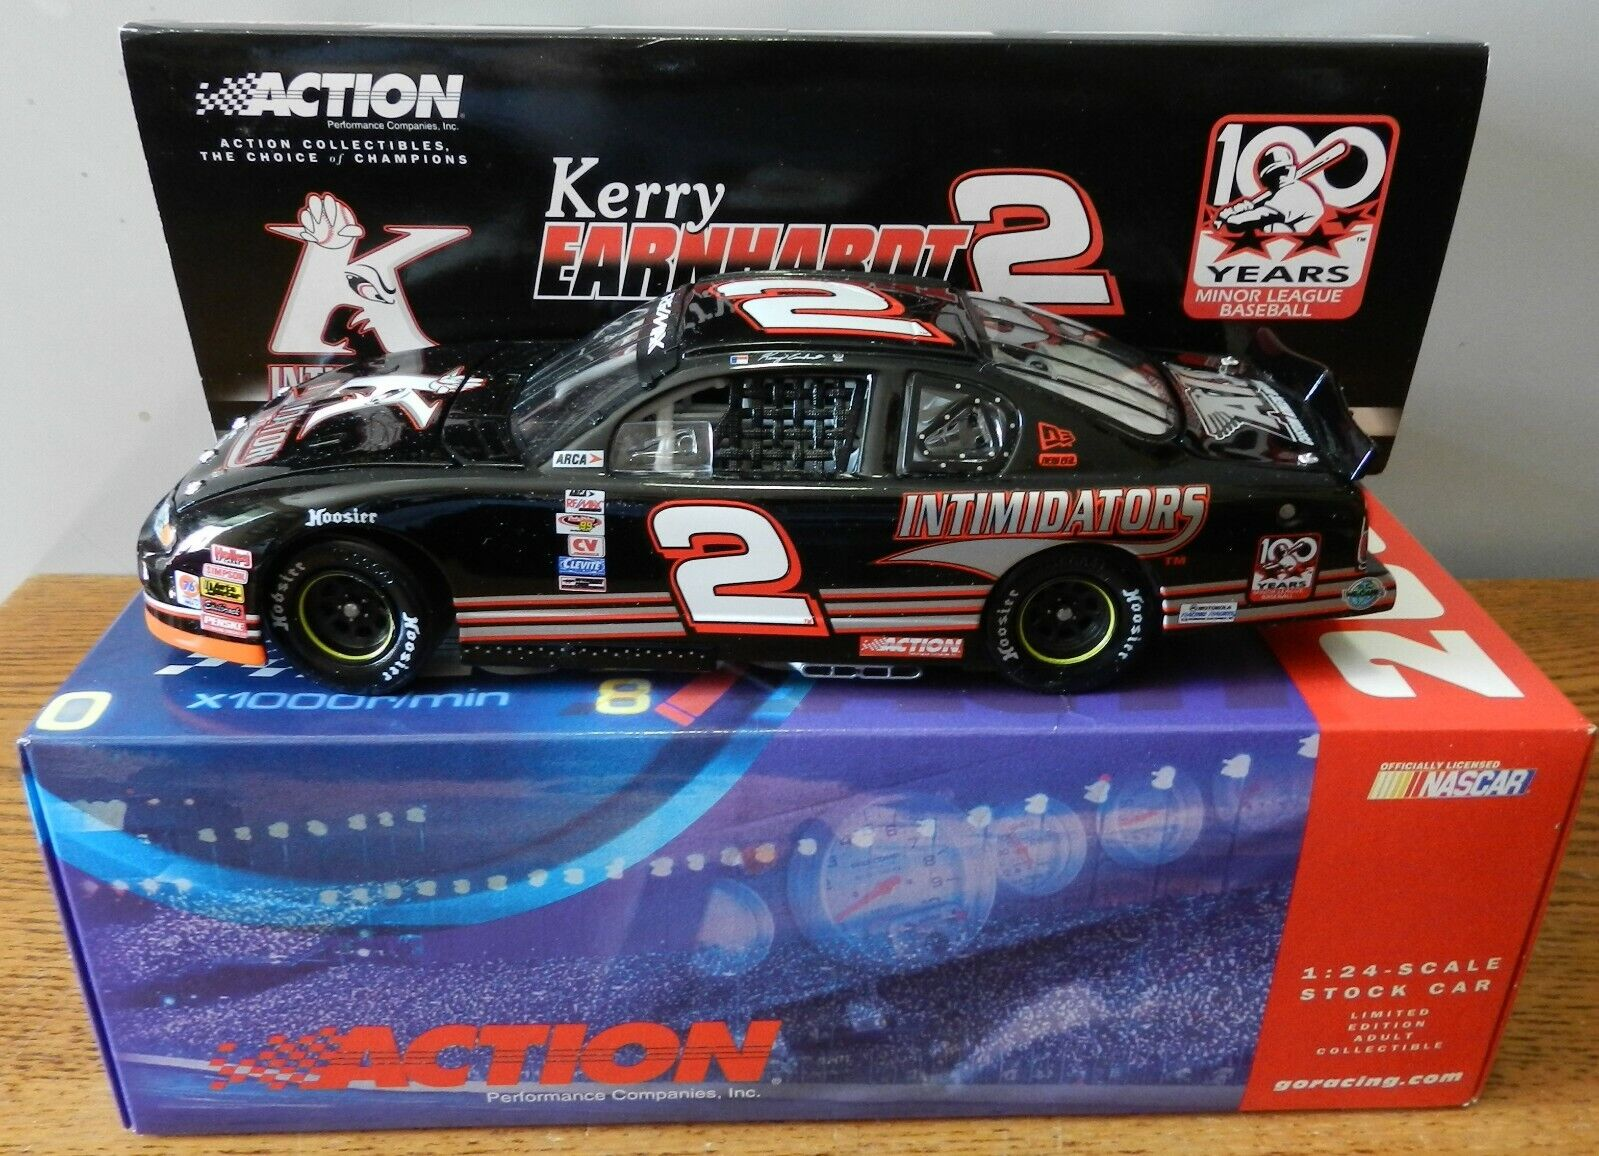 2001 Kerry Earnhardt  2   Intimidators   Action Limitierte Auflage 1 von 21024